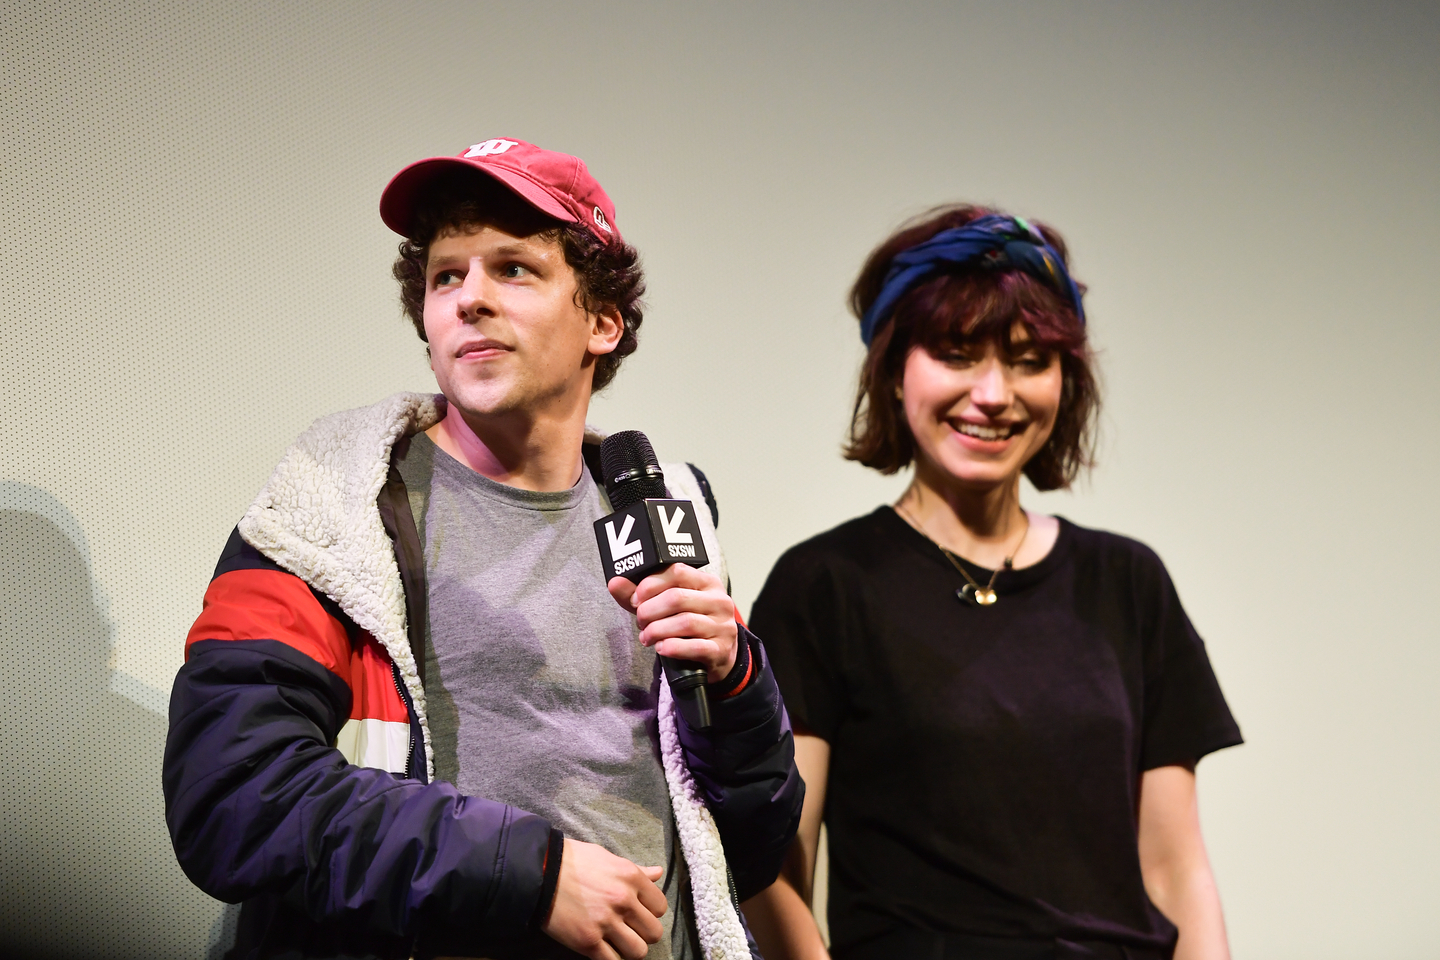 Jesse Eisenberg and Imogen Poots attend the The Art Of Self-Defense Premiere at the Paramount Theatre.